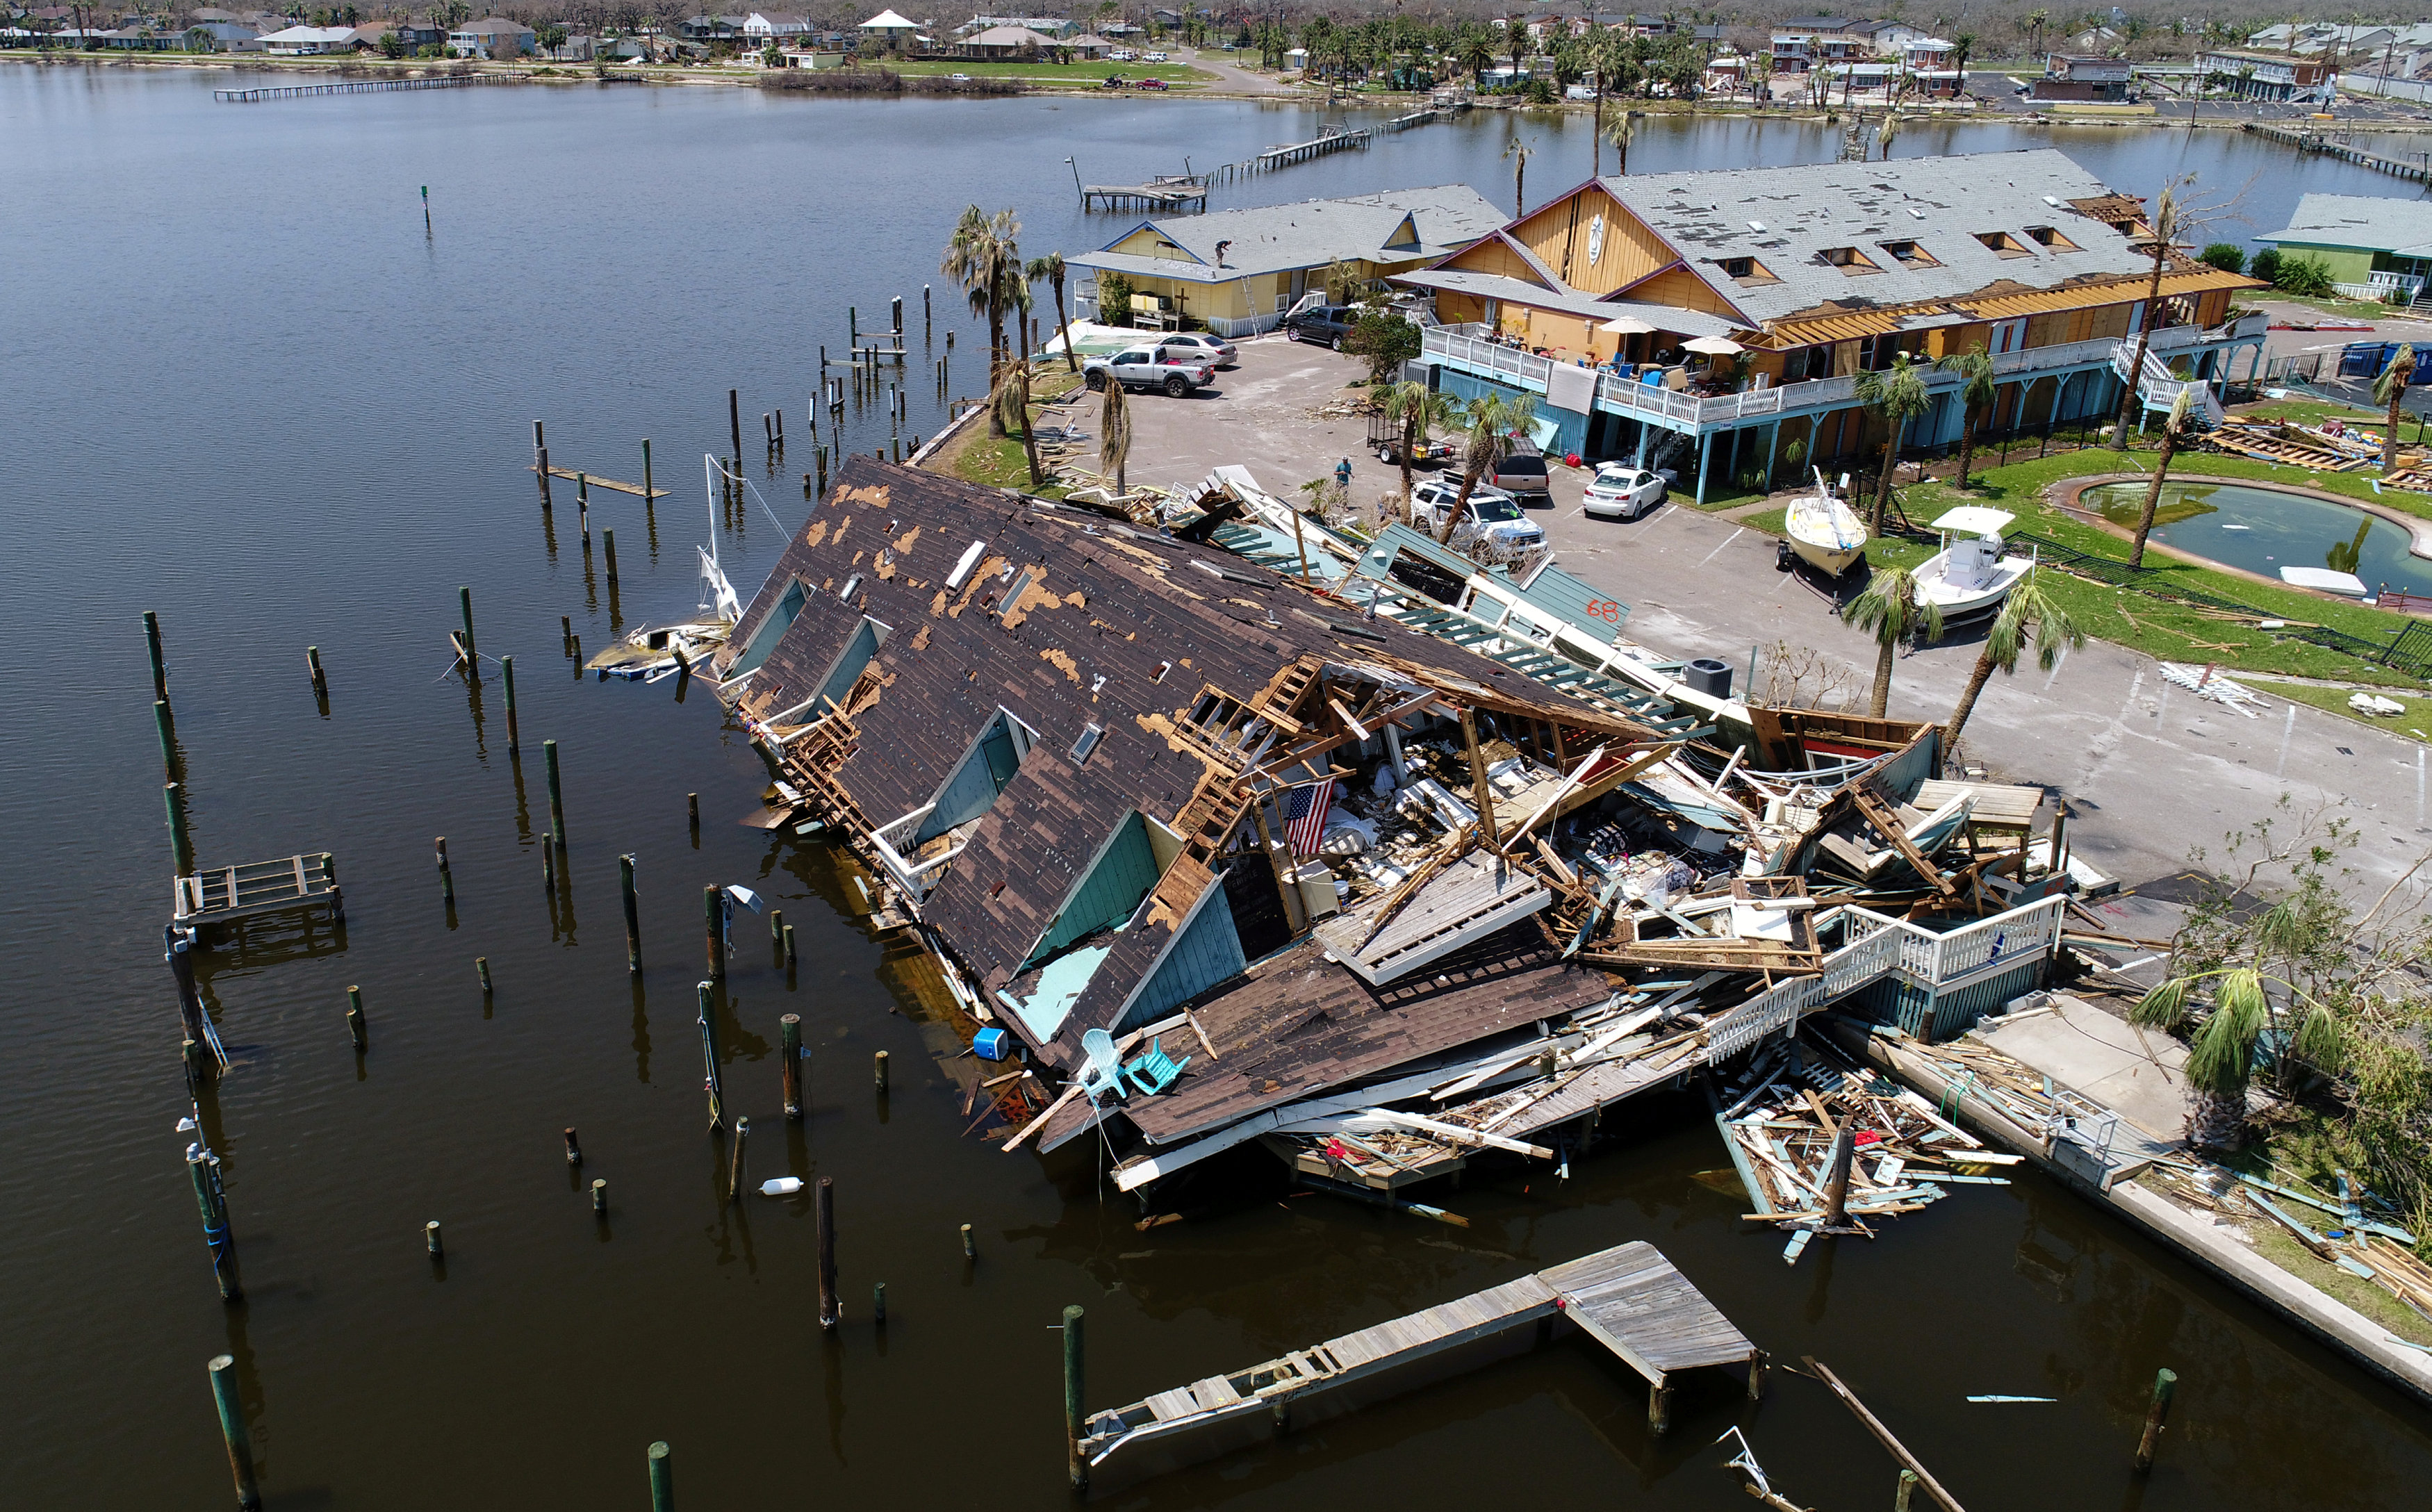 An aerial photo shows damage caused by Hurricane Harvey in Rockport, Texas on Aug. 31, 2017. (REUTERS/DroneBase)